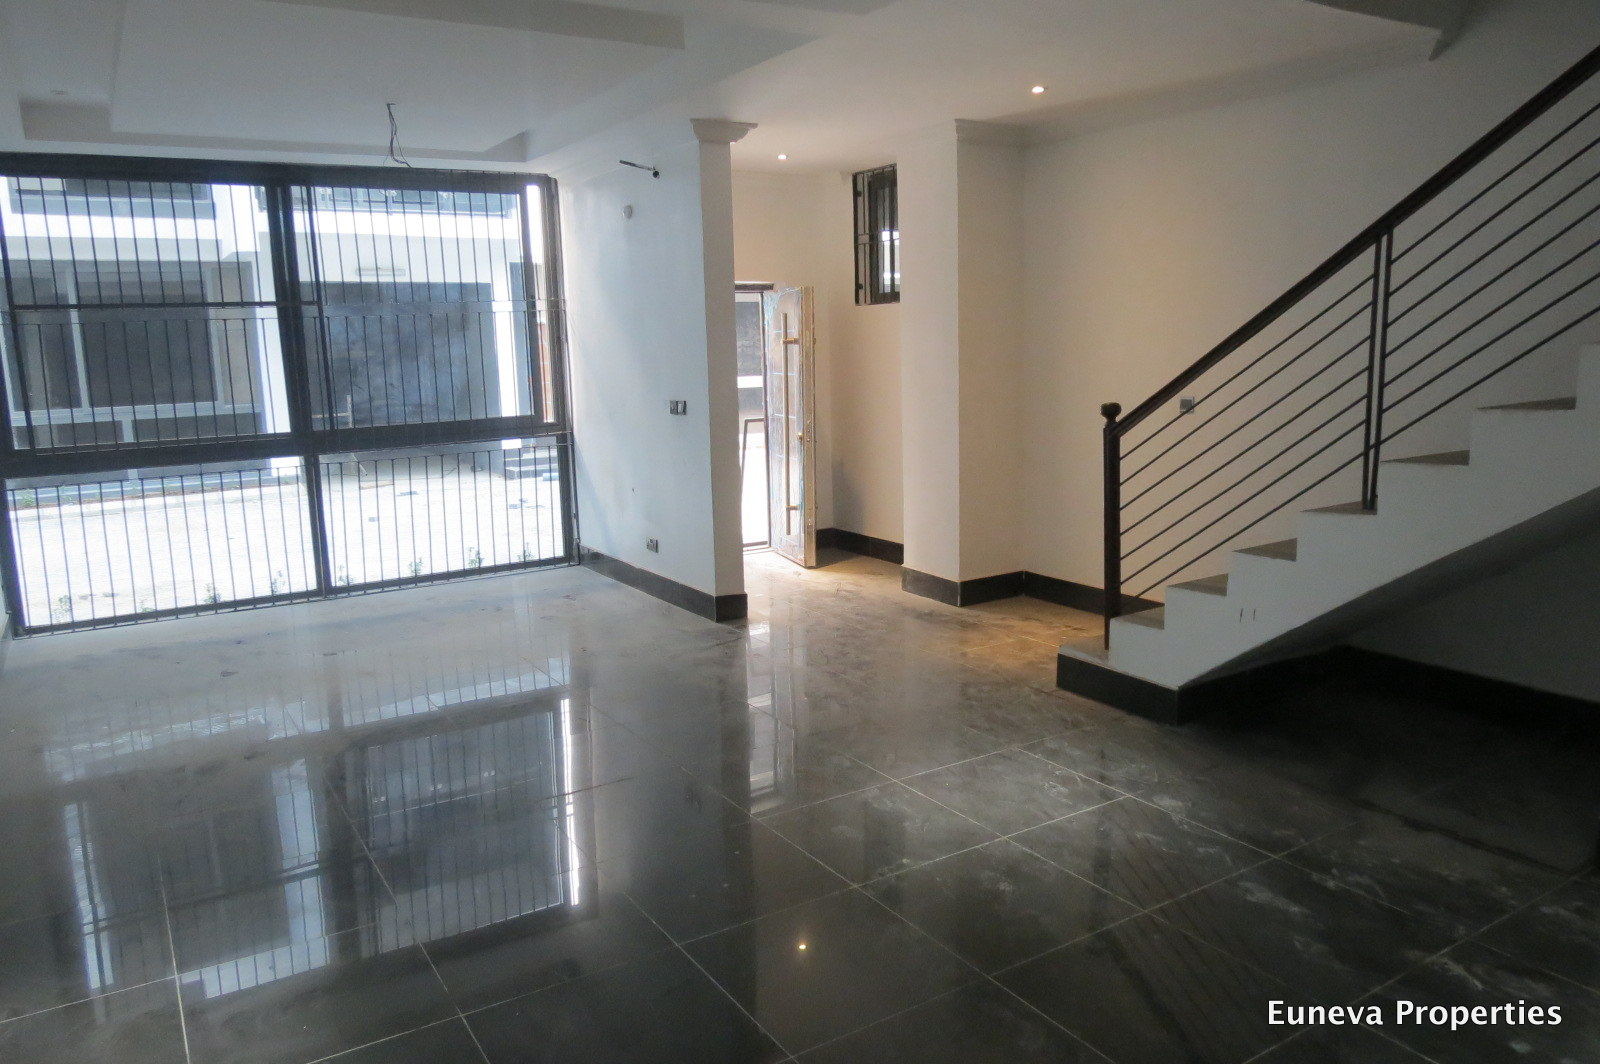 Luxury Finished 5 Bedroom Terrace House in Lekki phase 1 with Swimming Pool and GYM